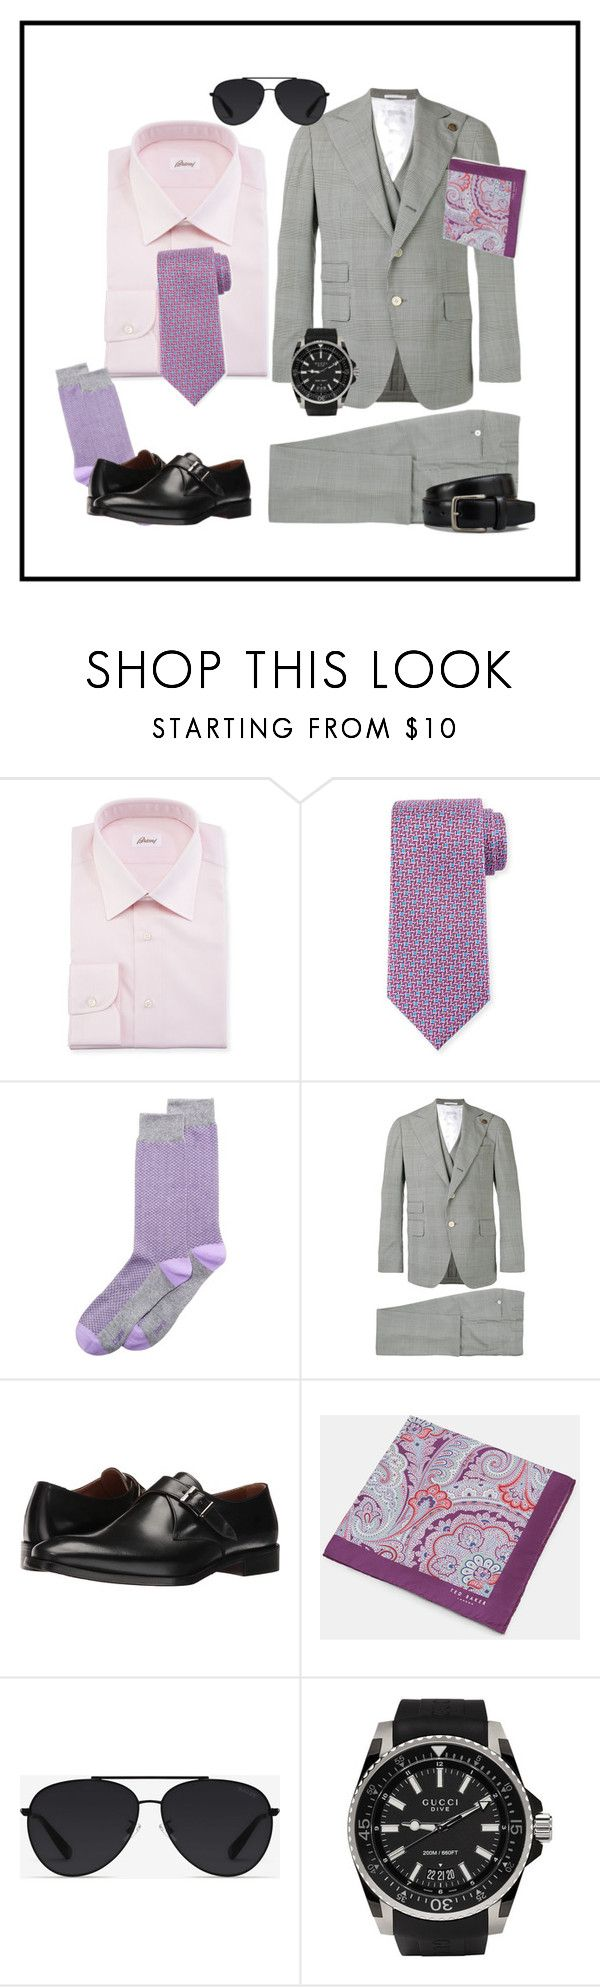 """Men's Suit, Dapper"" by kvogele ❤ liked on Polyvore featuring Brioni, Ermenegildo Zegna, Bar III, Gabriele Pasini, Kenneth Cole, Ted Baker, Bally, Gucci, Tod's and men's fashion"